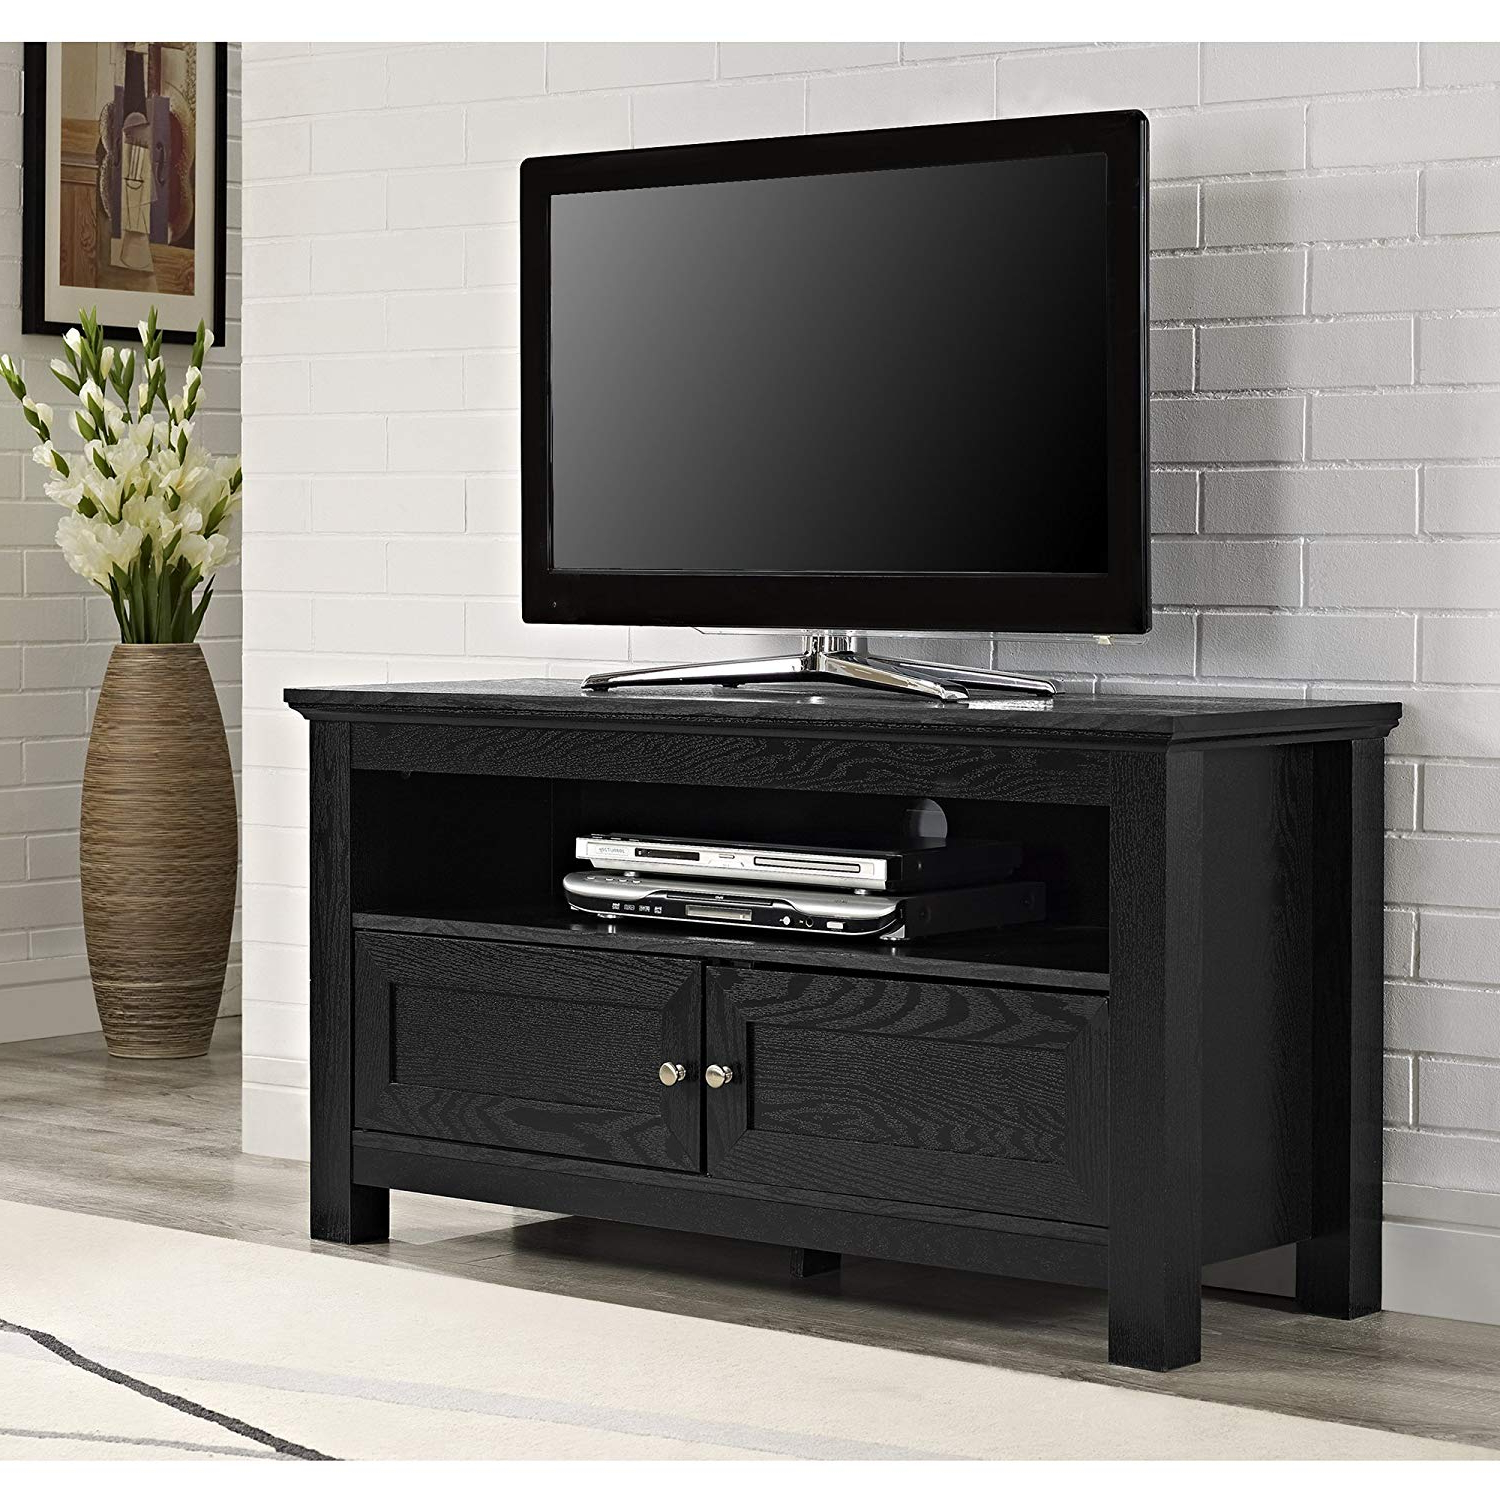 Preferred Small Black Tv Cabinets Pertaining To Amazon: Walker Edison 44 Inches Cortez Tv Stand Console, Black (View 8 of 20)